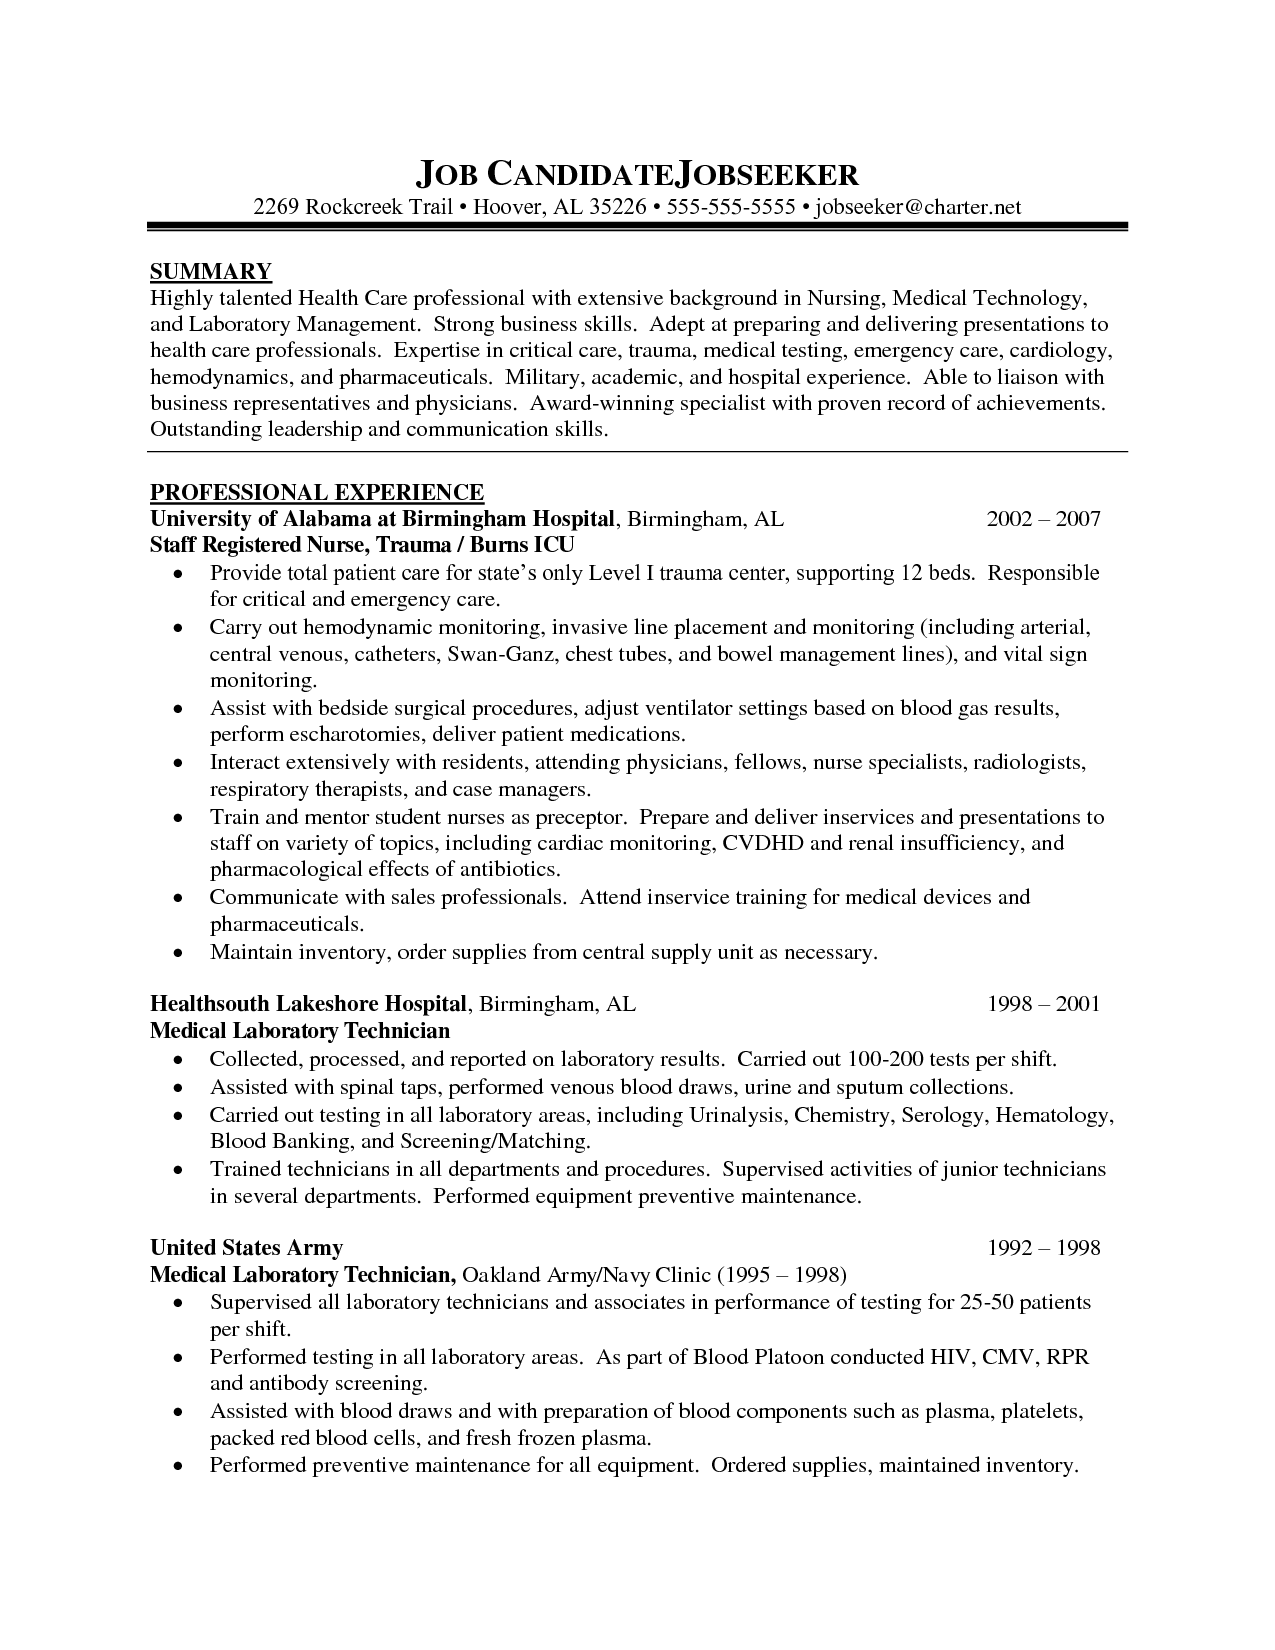 Resume Template For Registered Nurse Resume Sample Resume